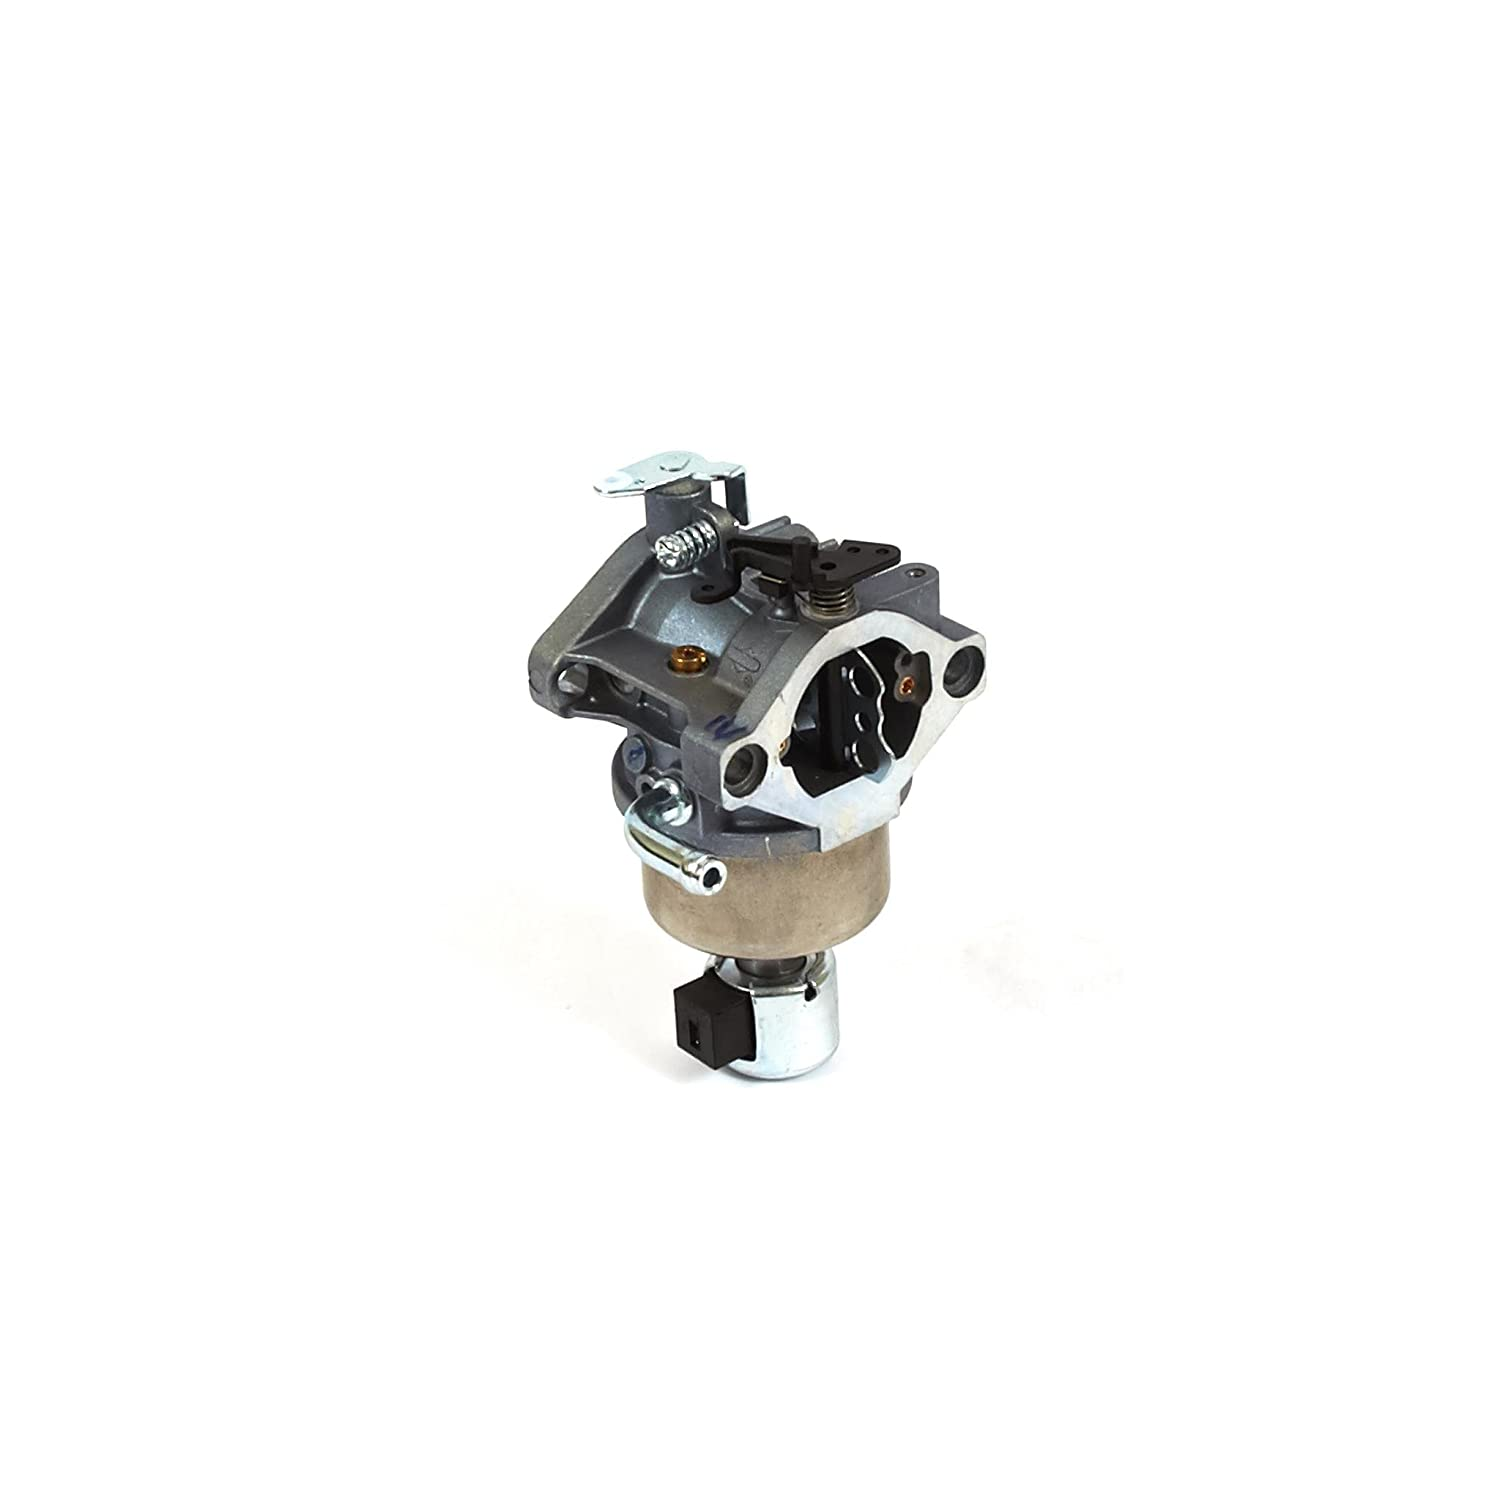 Briggs & Stratton 594593 Carburetor